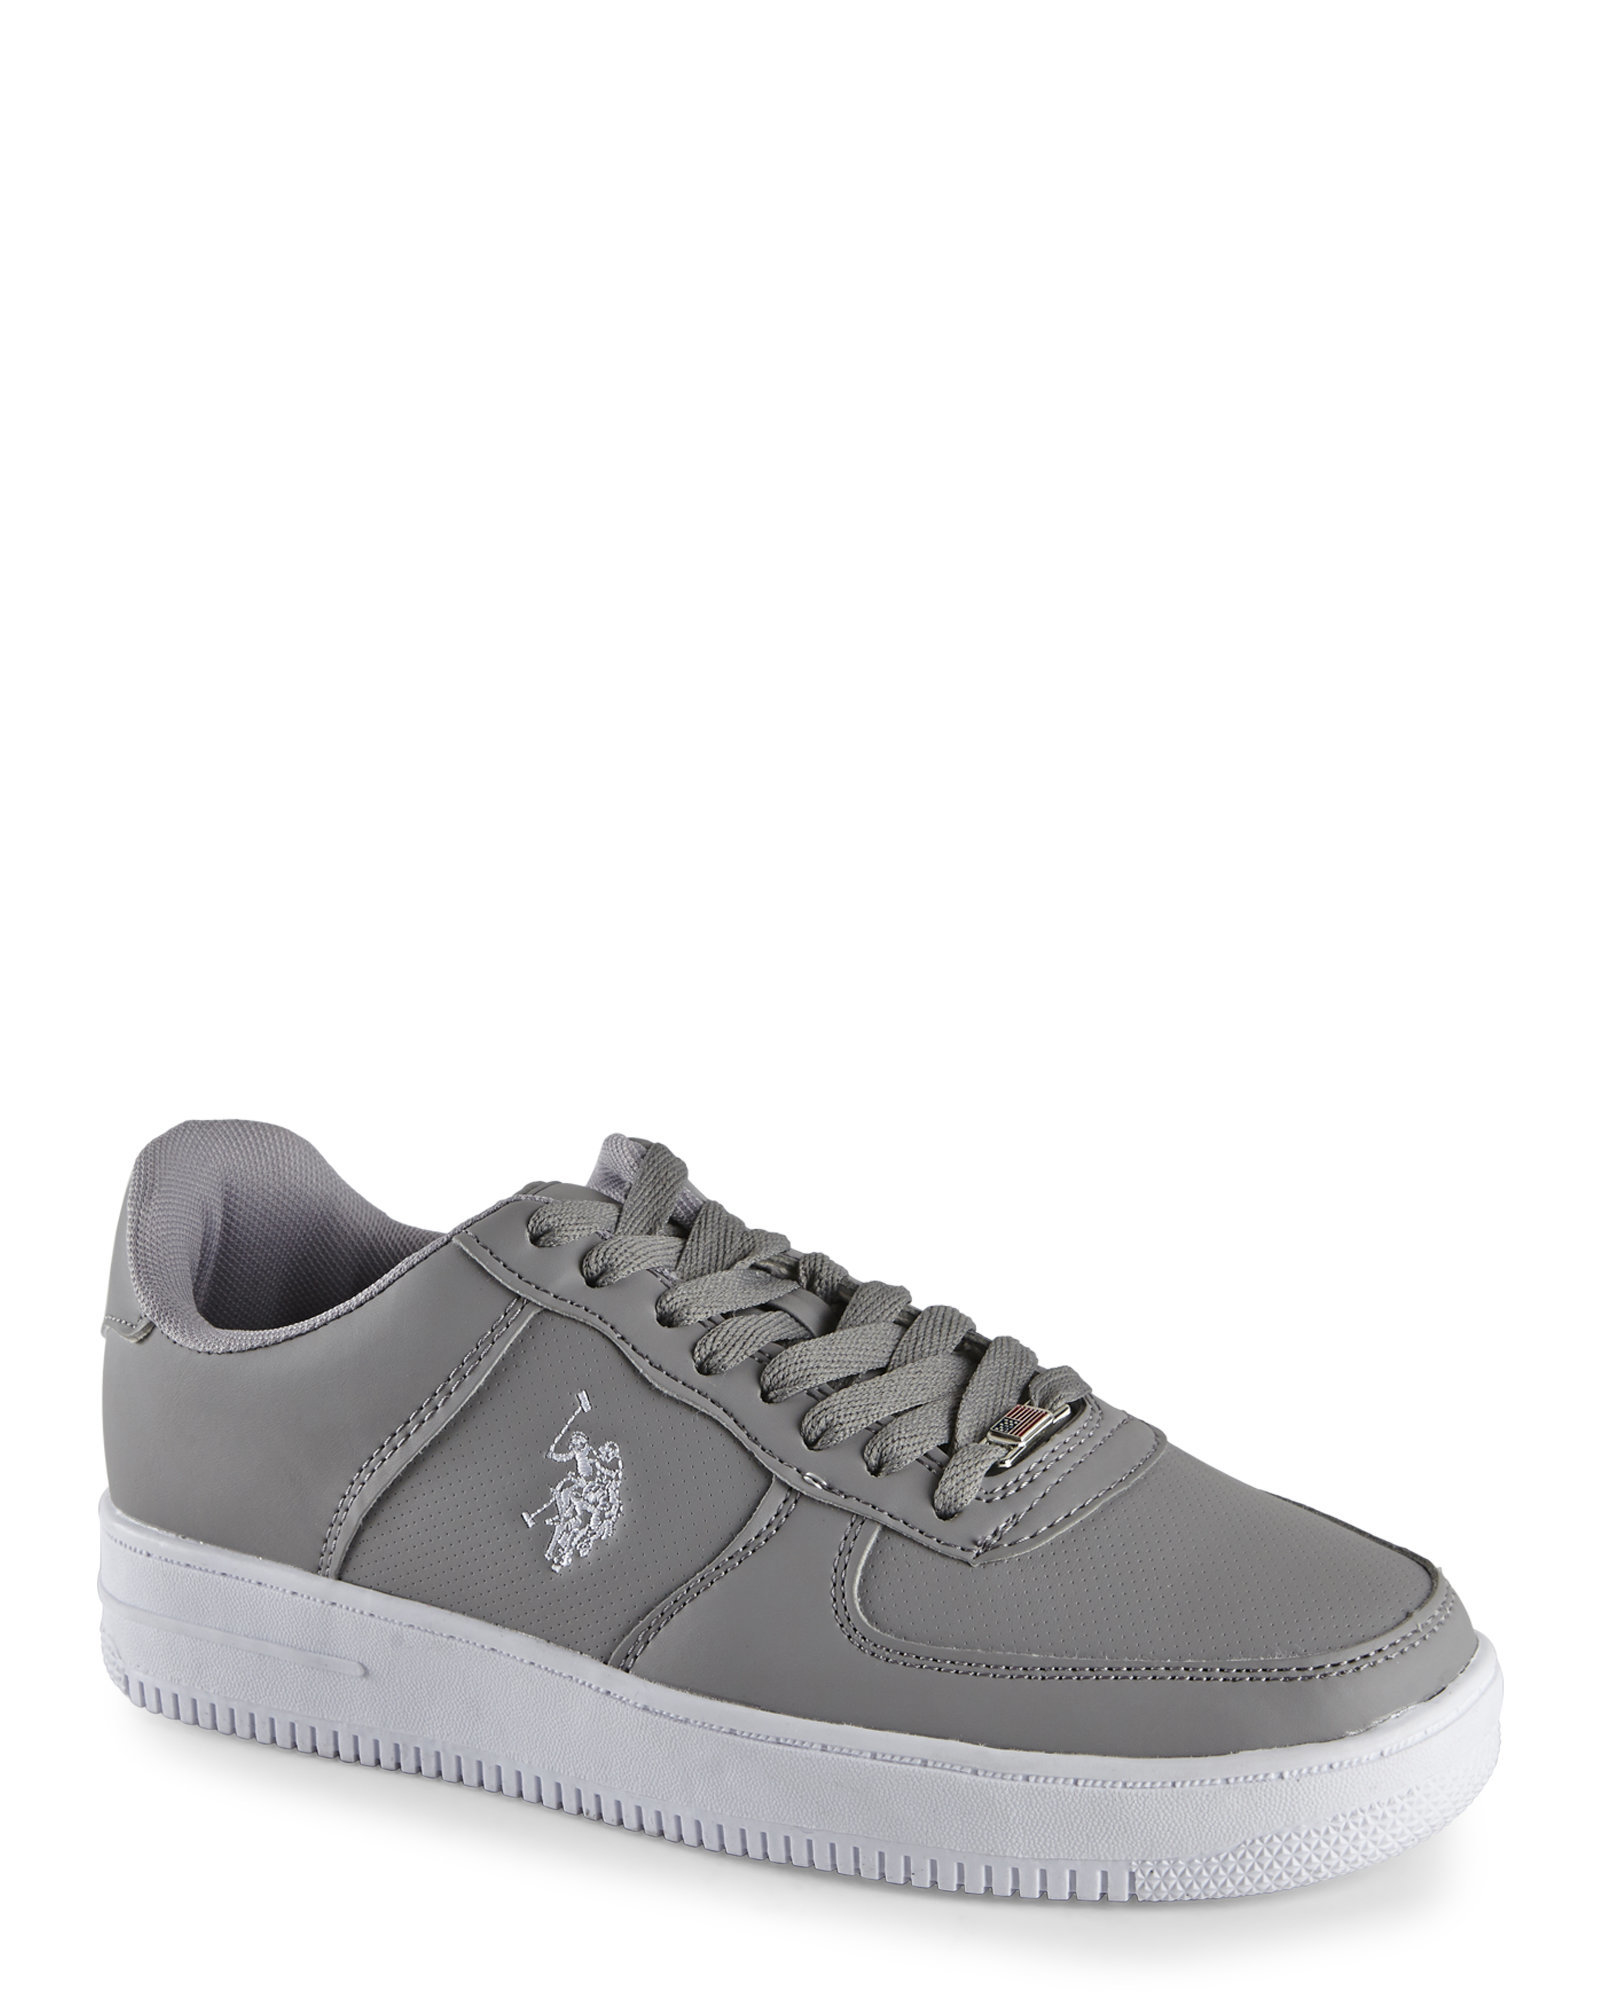 u s polo assn grey white branson 2 perforated sneakers